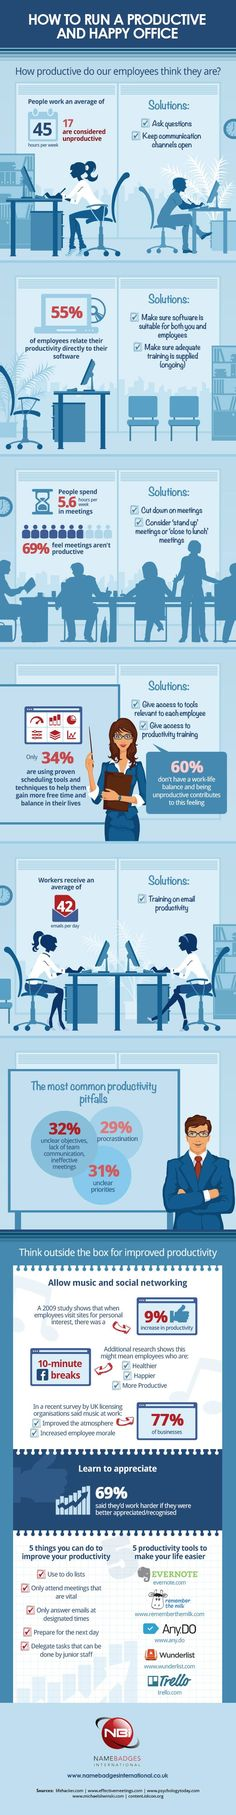 How to Run a Productive Office (#Infographic) - What employees think about how productive they are.